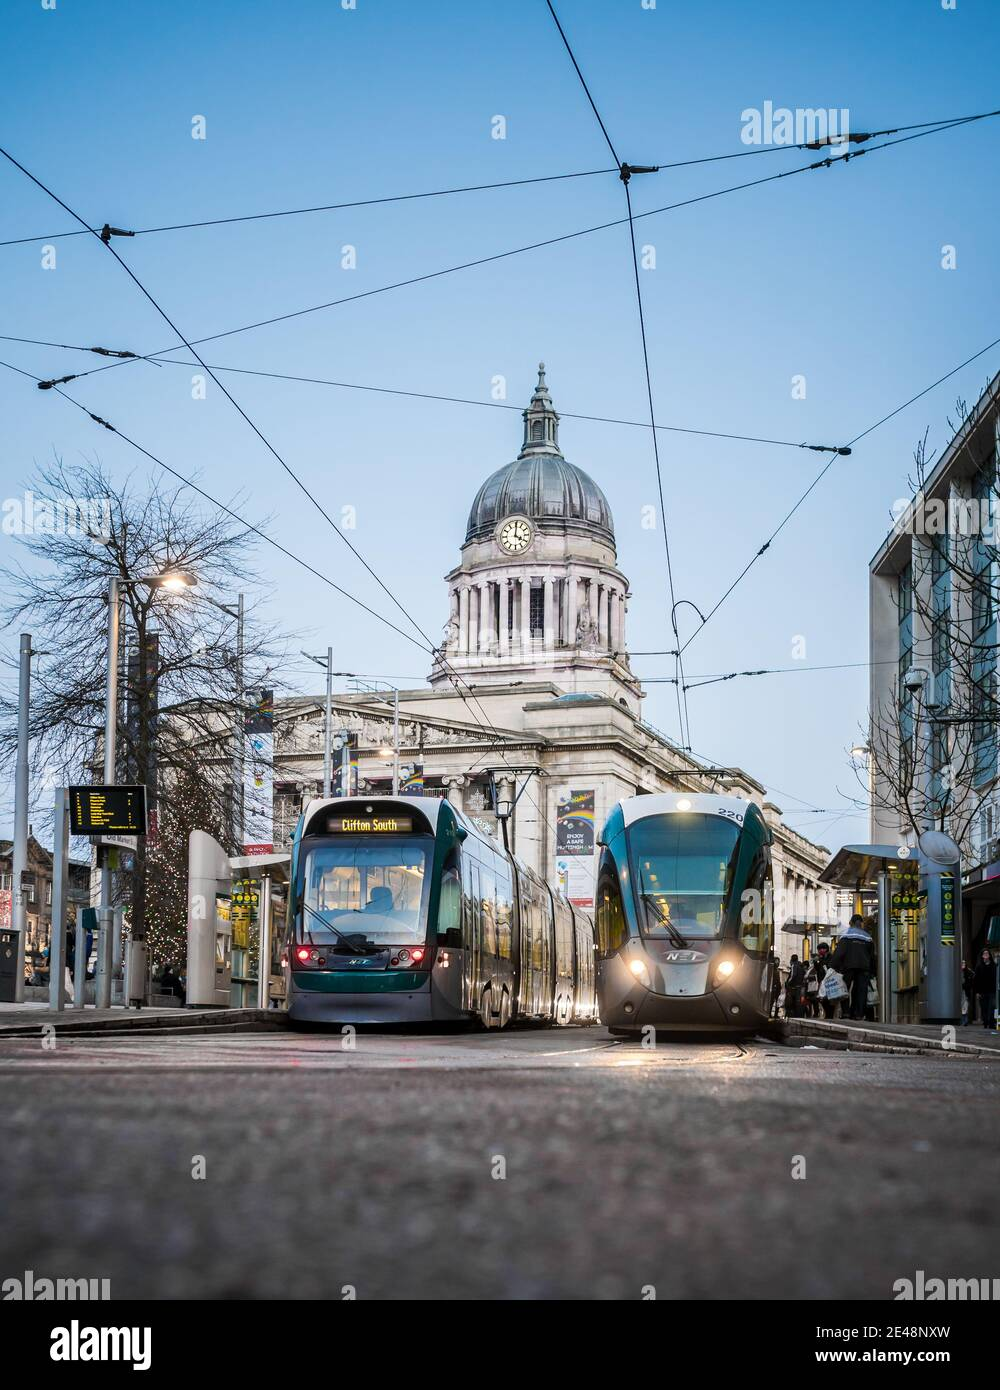 Nottingham UK city centre shoppers trams council house illuminated with tram parked in front lit up at night street lams and cables train waiting Stock Photo